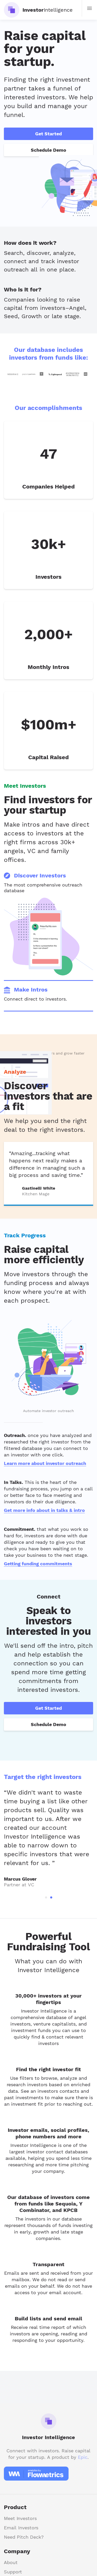 Example of Design for Business & Industrial, Business Finance, Venture Capital, Mobile Landing Page by investorintelligence.io | Mobile Landing Page Design